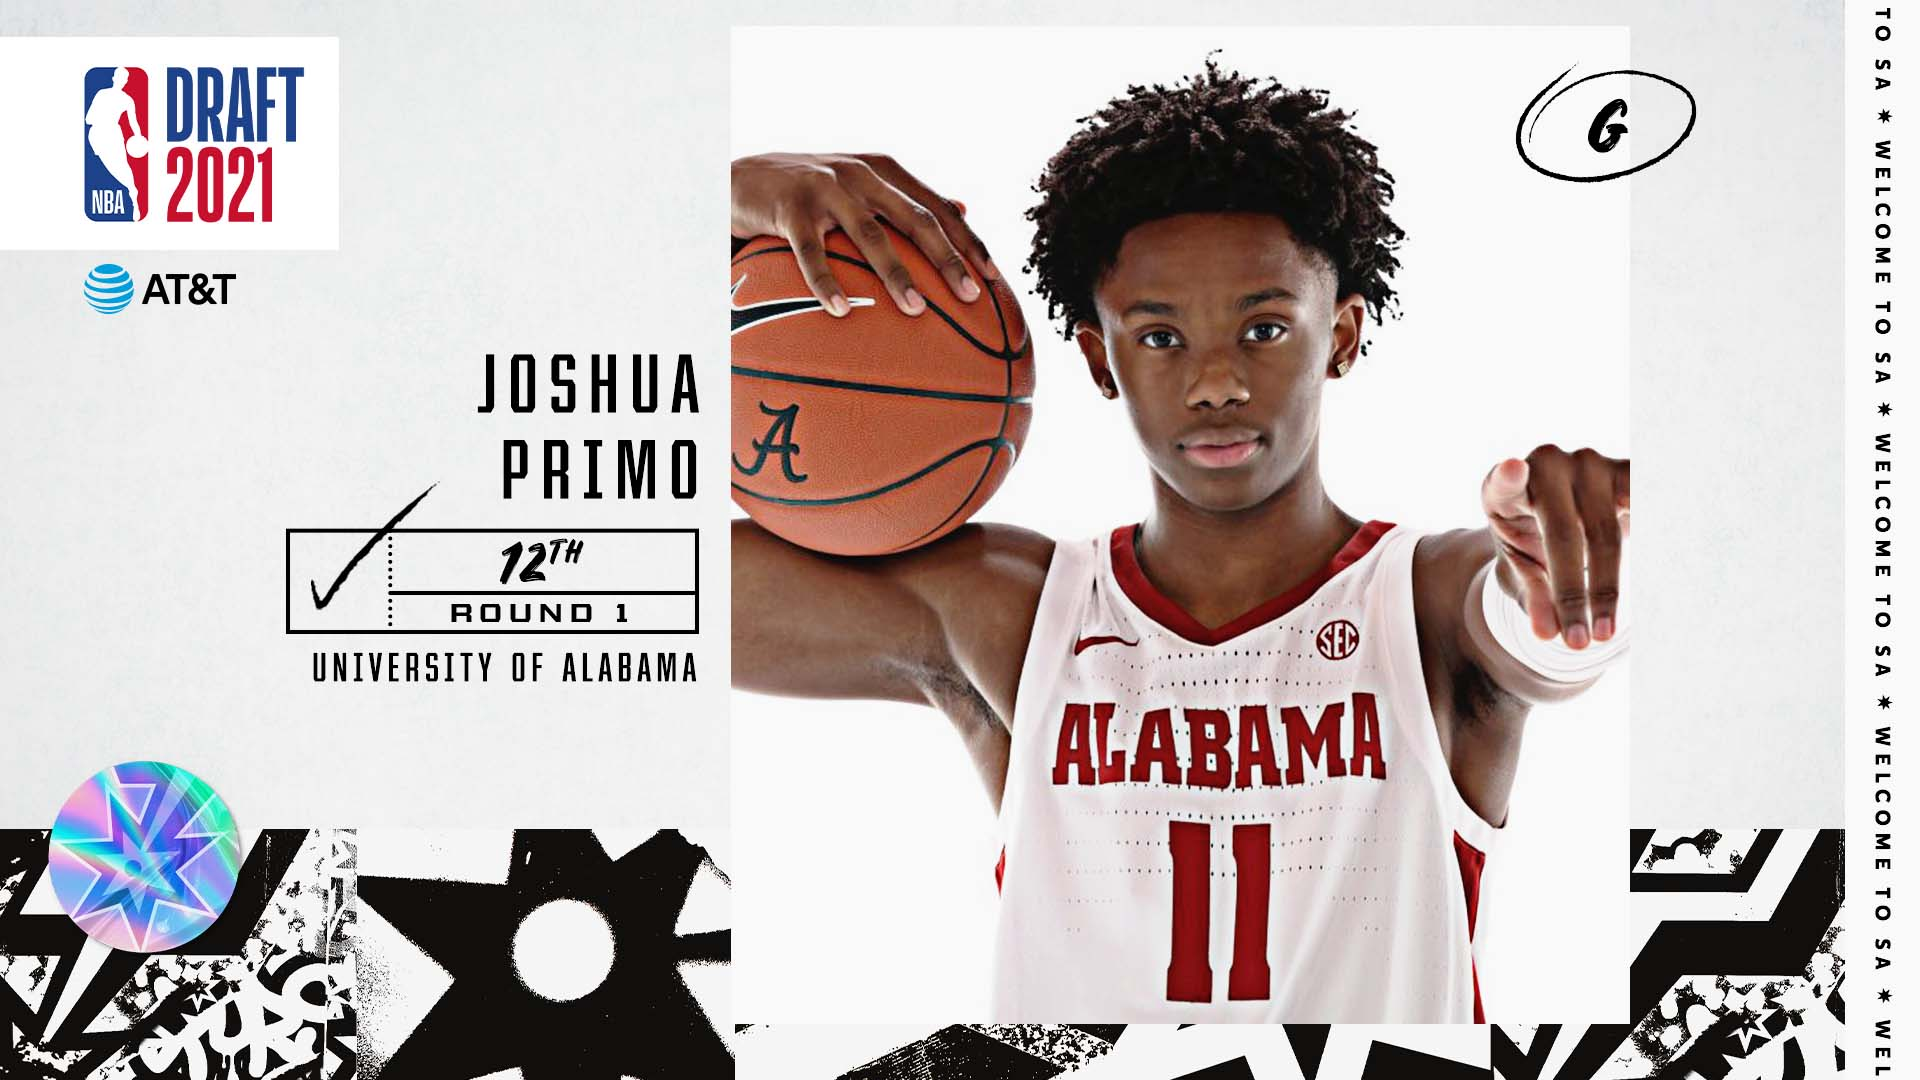 With the 12th pick in the 2021 NBA Draft, the San Antonio Spurs select Joshua Primo